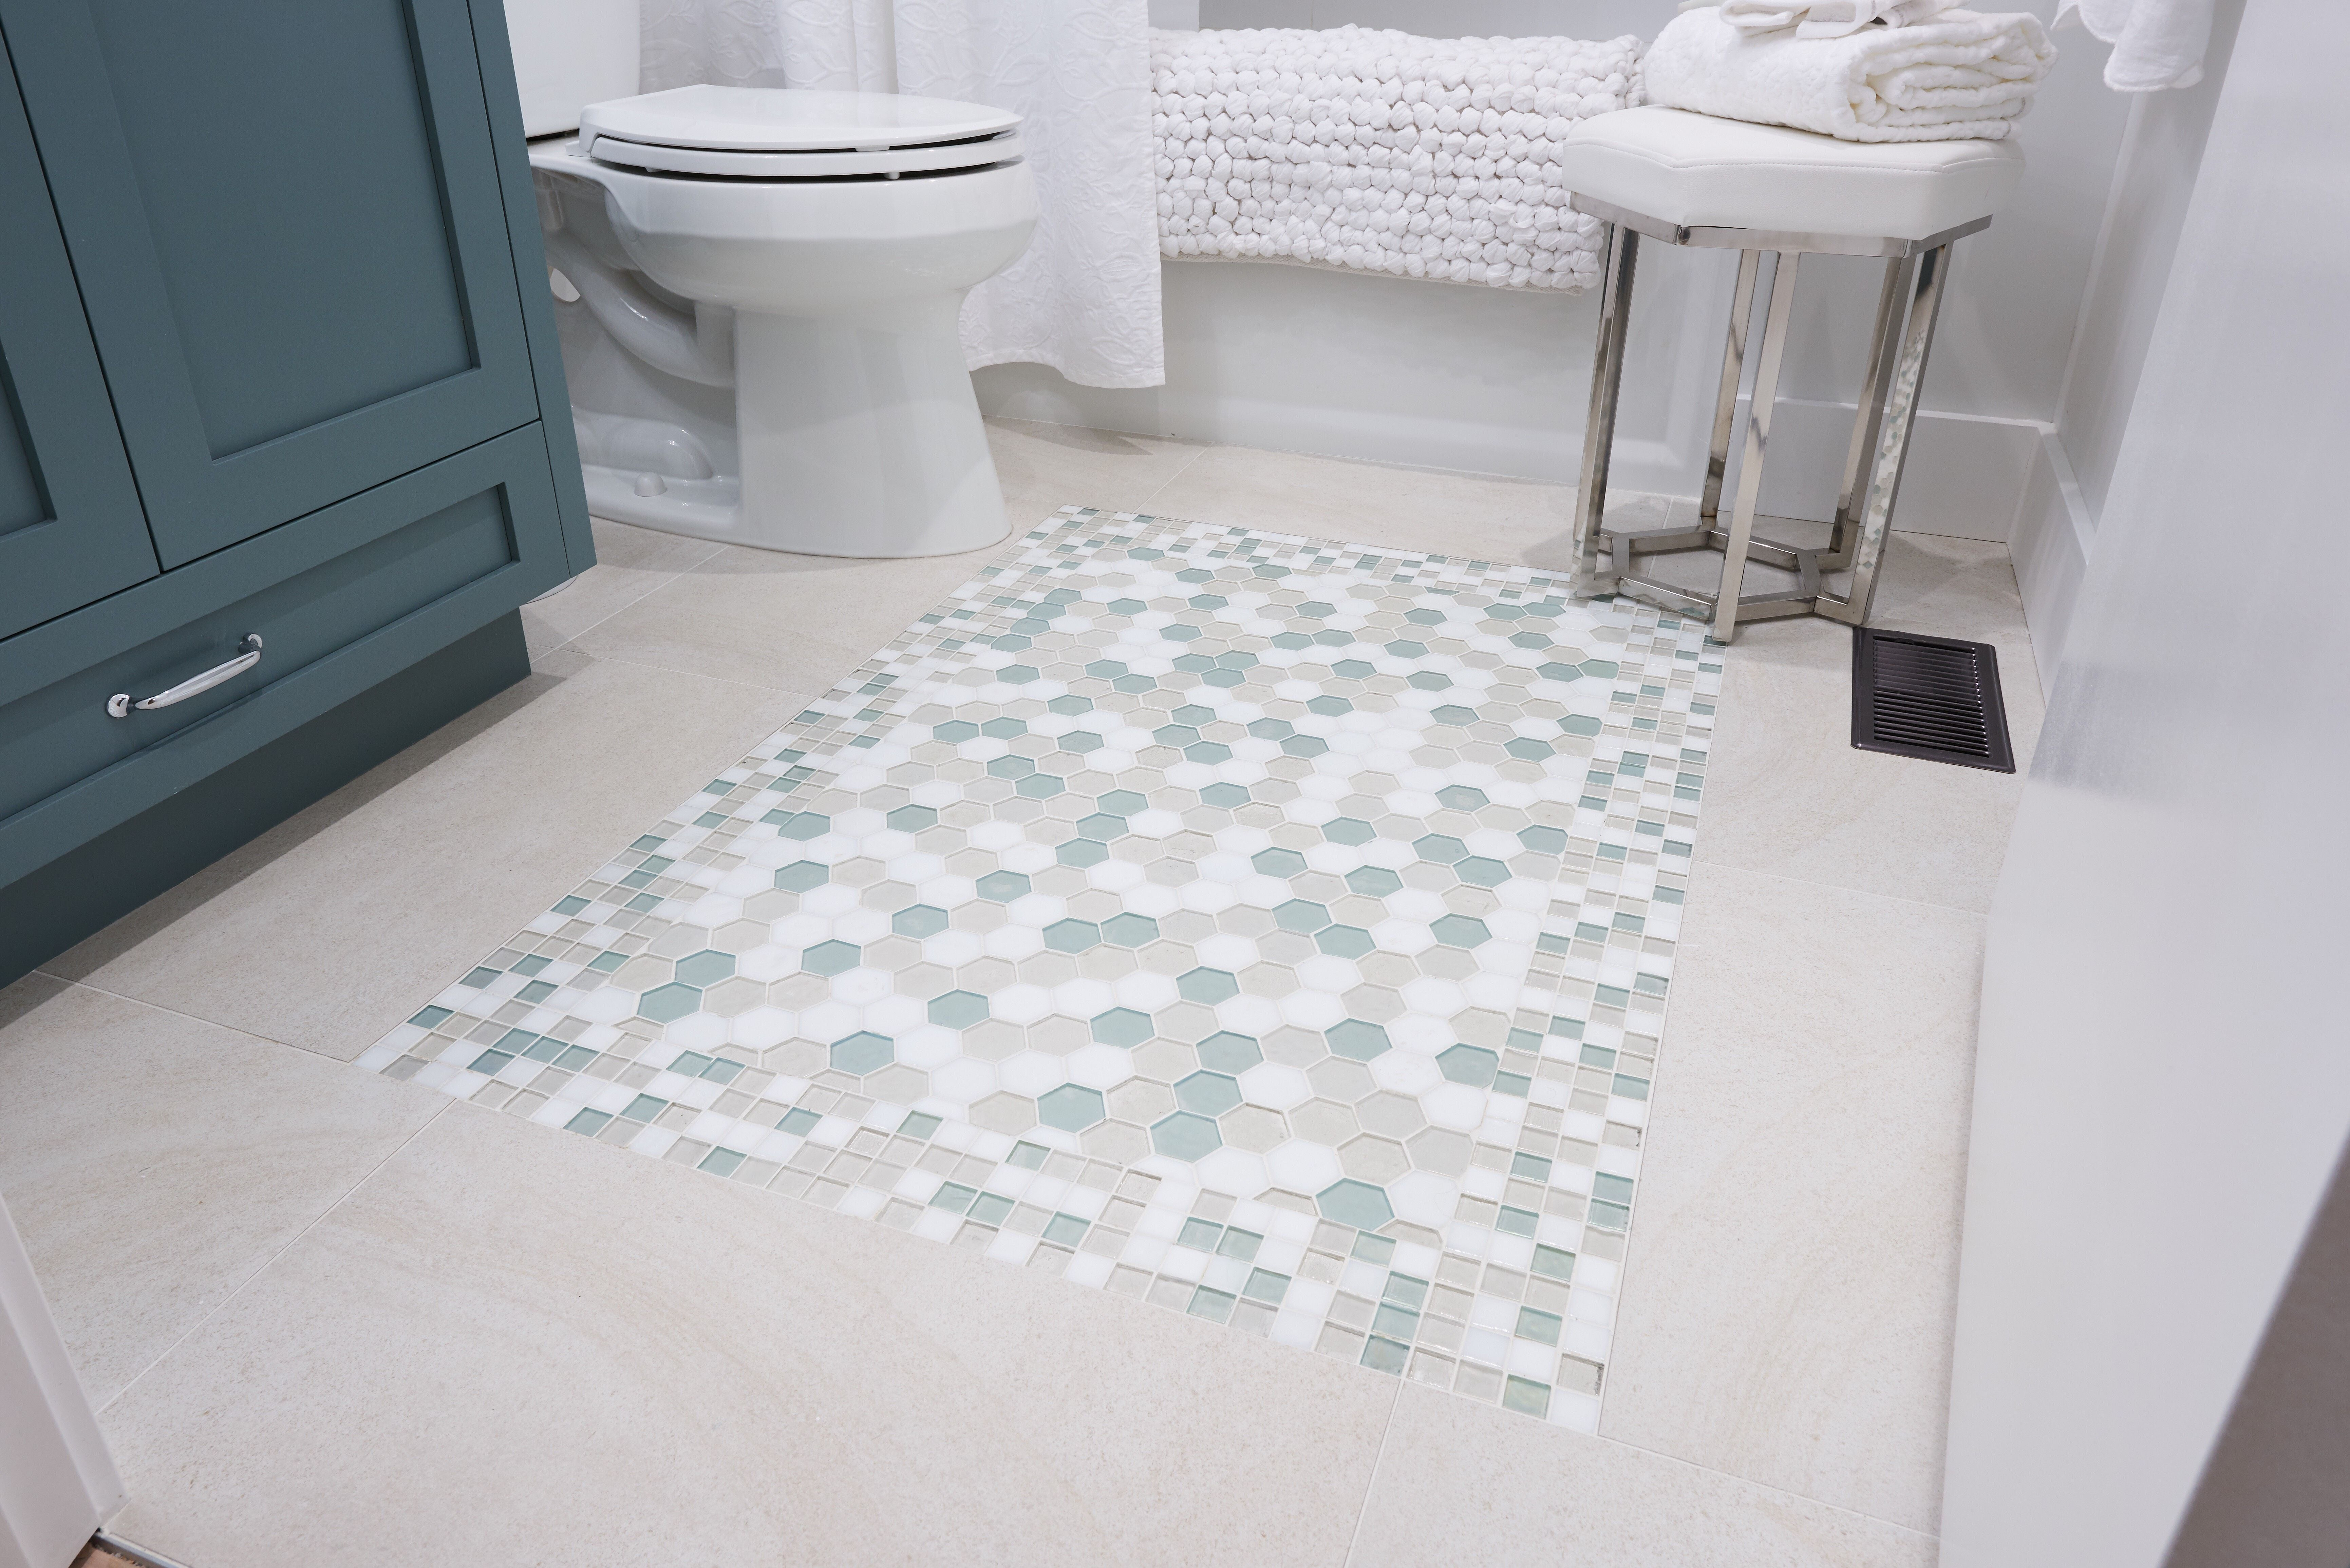 Stunning Bathroom Floor Tile Tessera Straight Set And Hexagon In The Atmosphere Blend Available At World Mosaic Til Glass Tile Mosaic Tiles Spa Inspiration